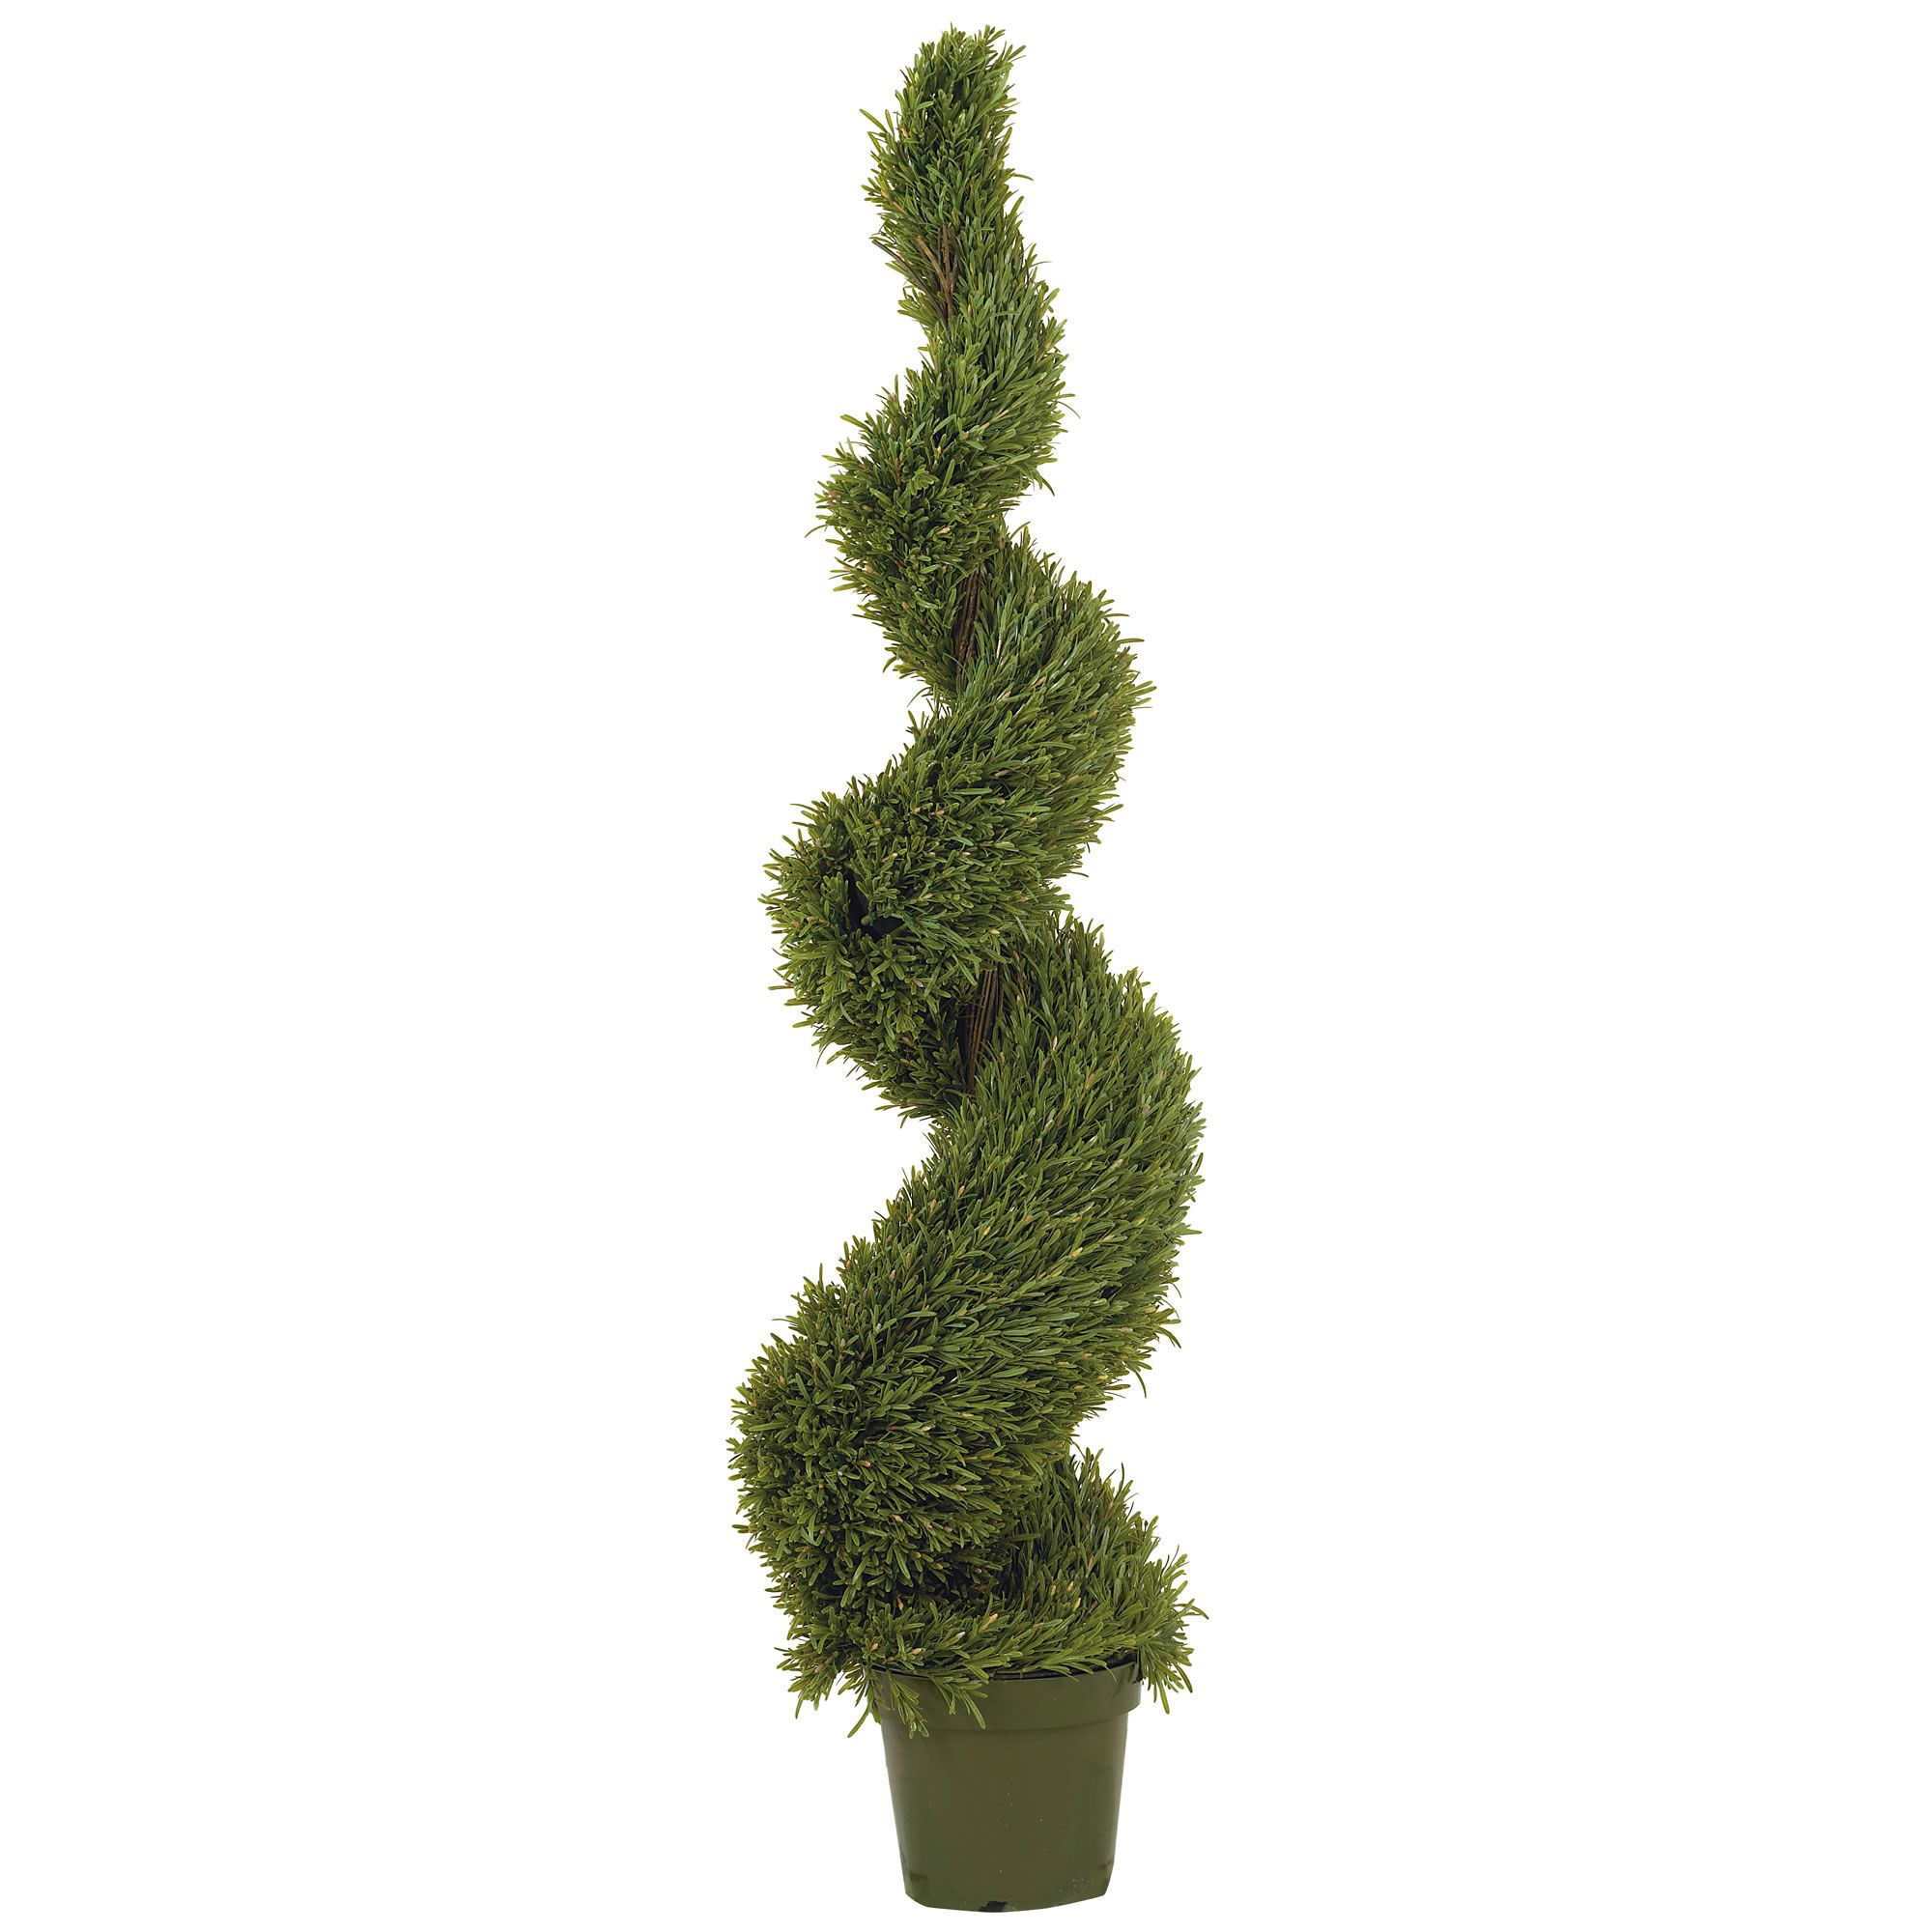 Creations of earth consulting u plant maintenanceu rosemary spiral